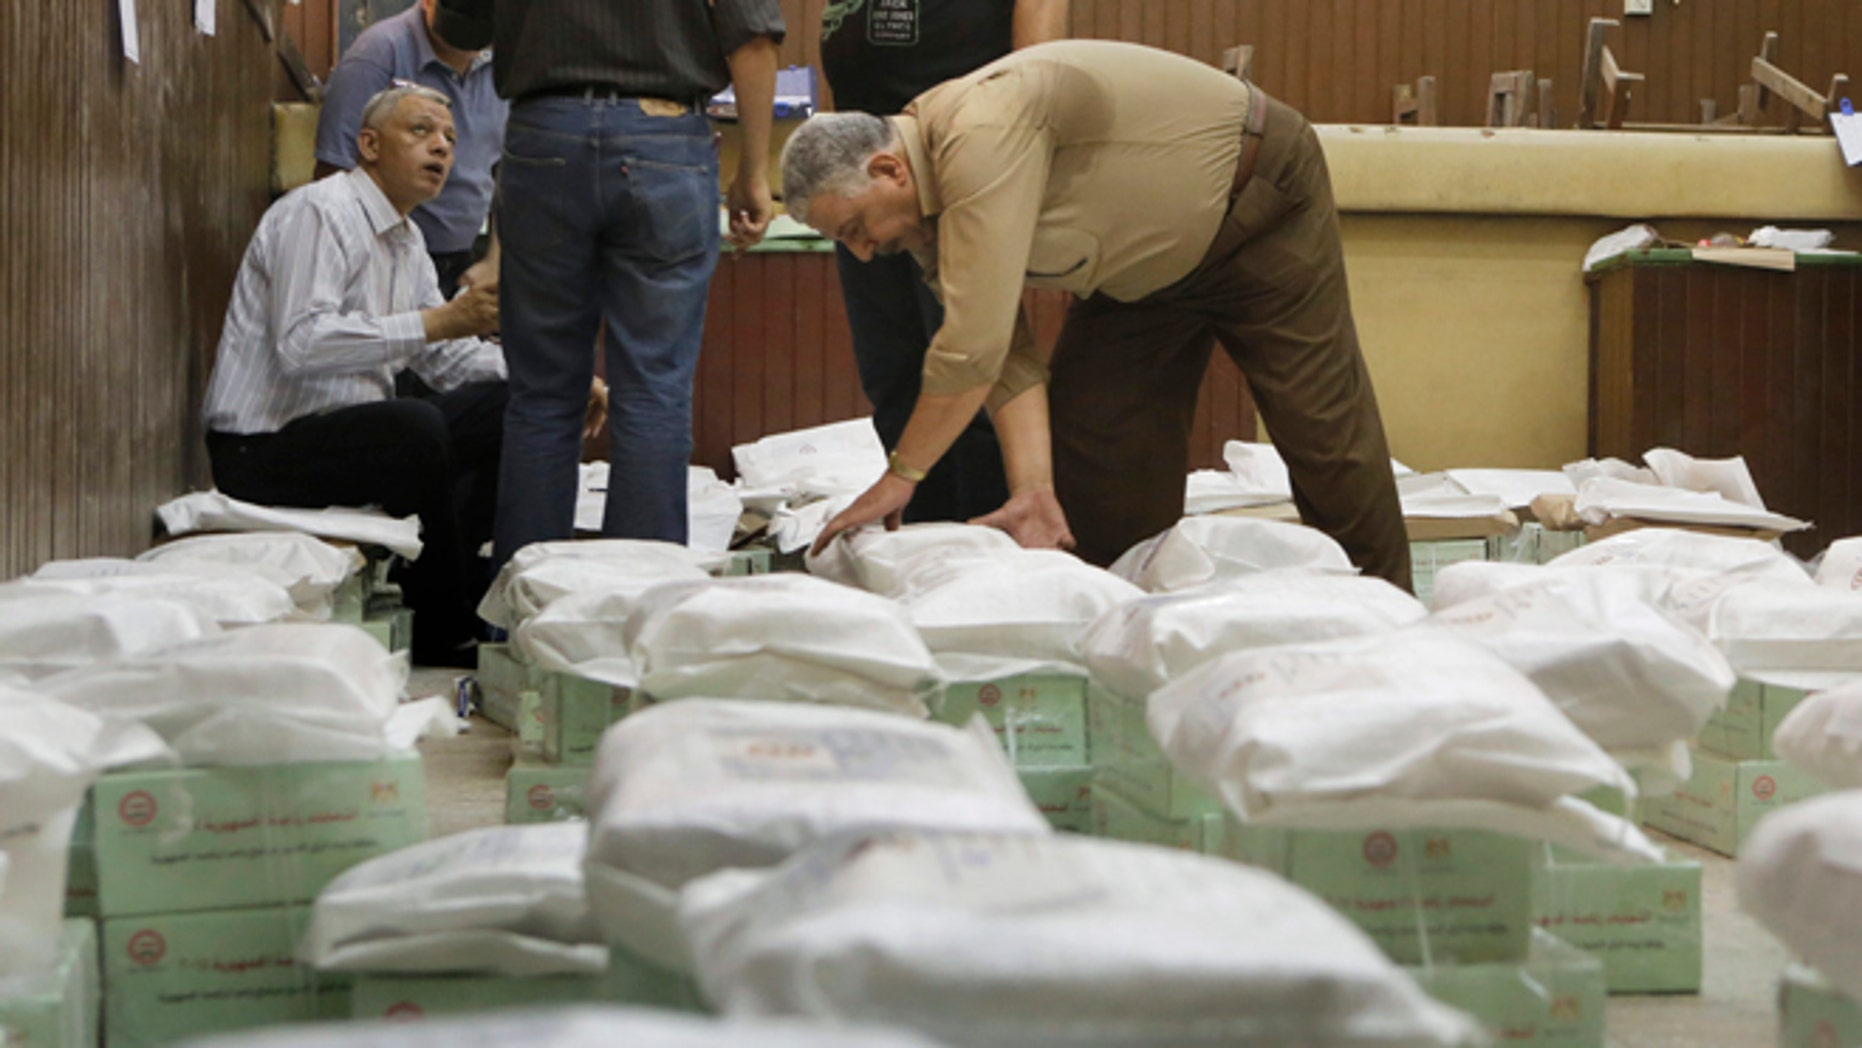 May 25, 2014: An Egyptian worker arranges boxes of ballots at the Giza courthouse a day before the country's two-day presidential elections begins, in Cairo, Egypt. (AP)